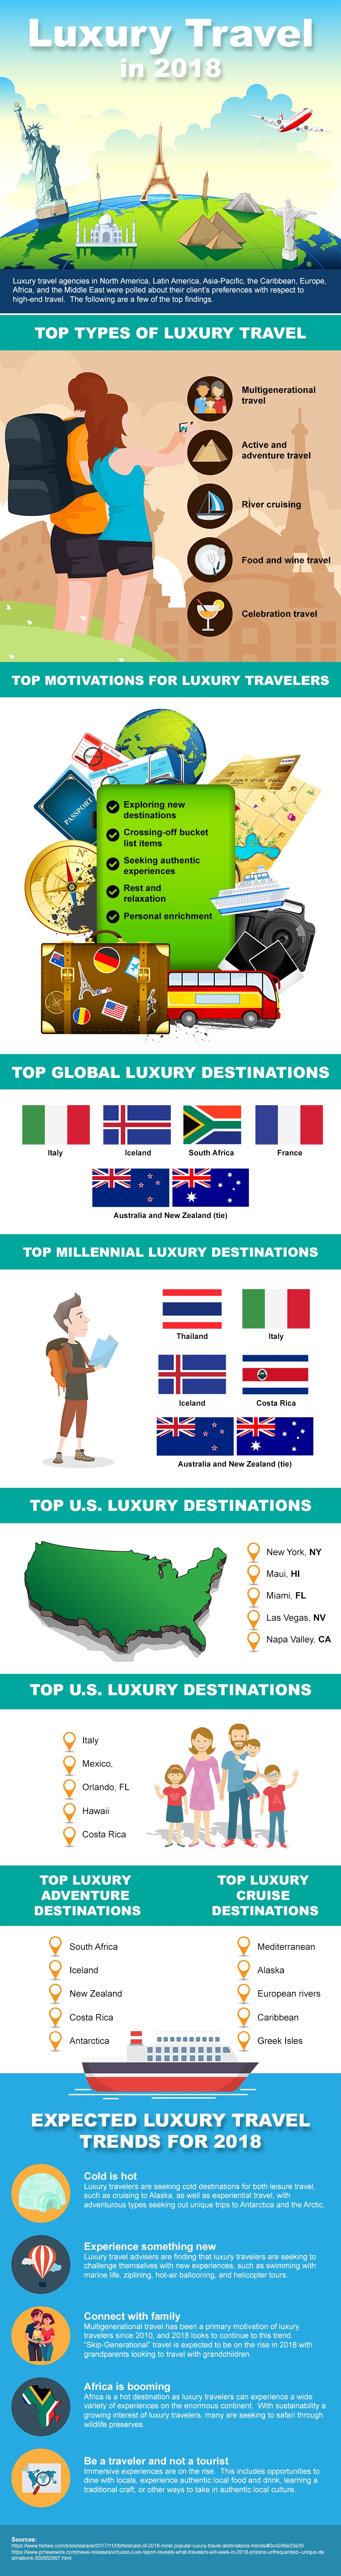 Luxury Travel Trends Infographic v2.jpeg